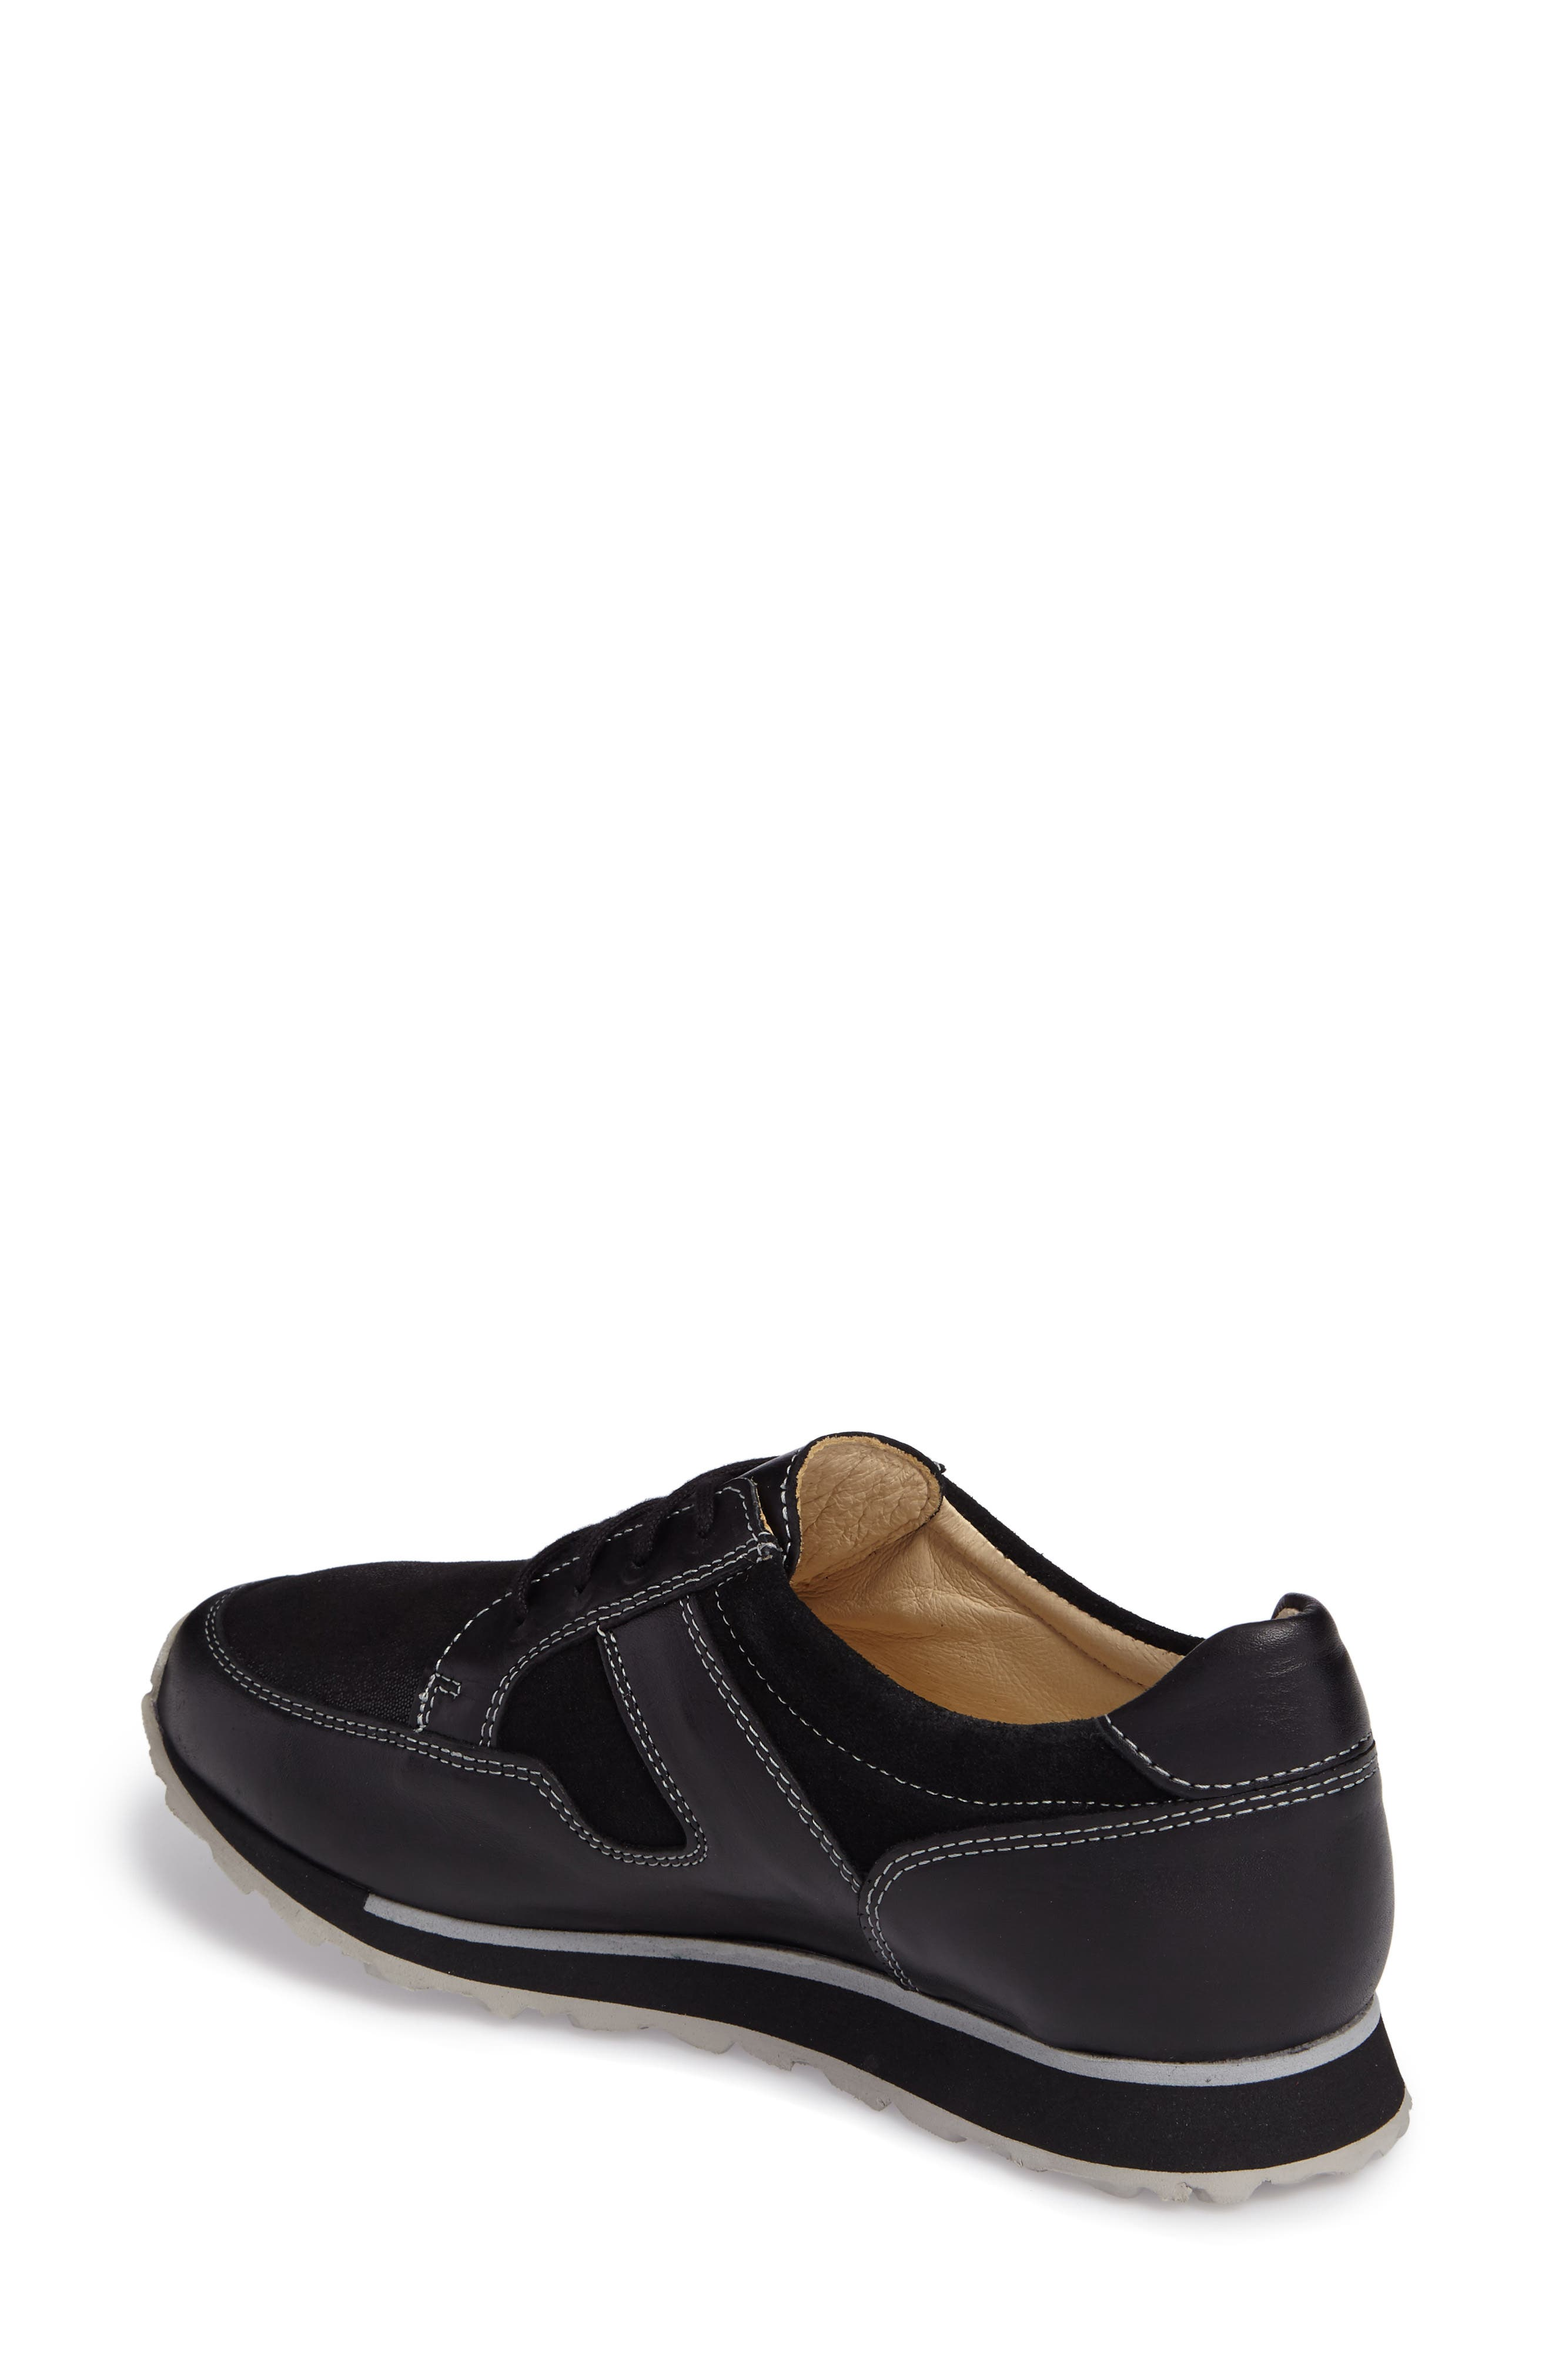 size 40 15c31 a4fc3 Women s Wolky Shoes   Nordstrom